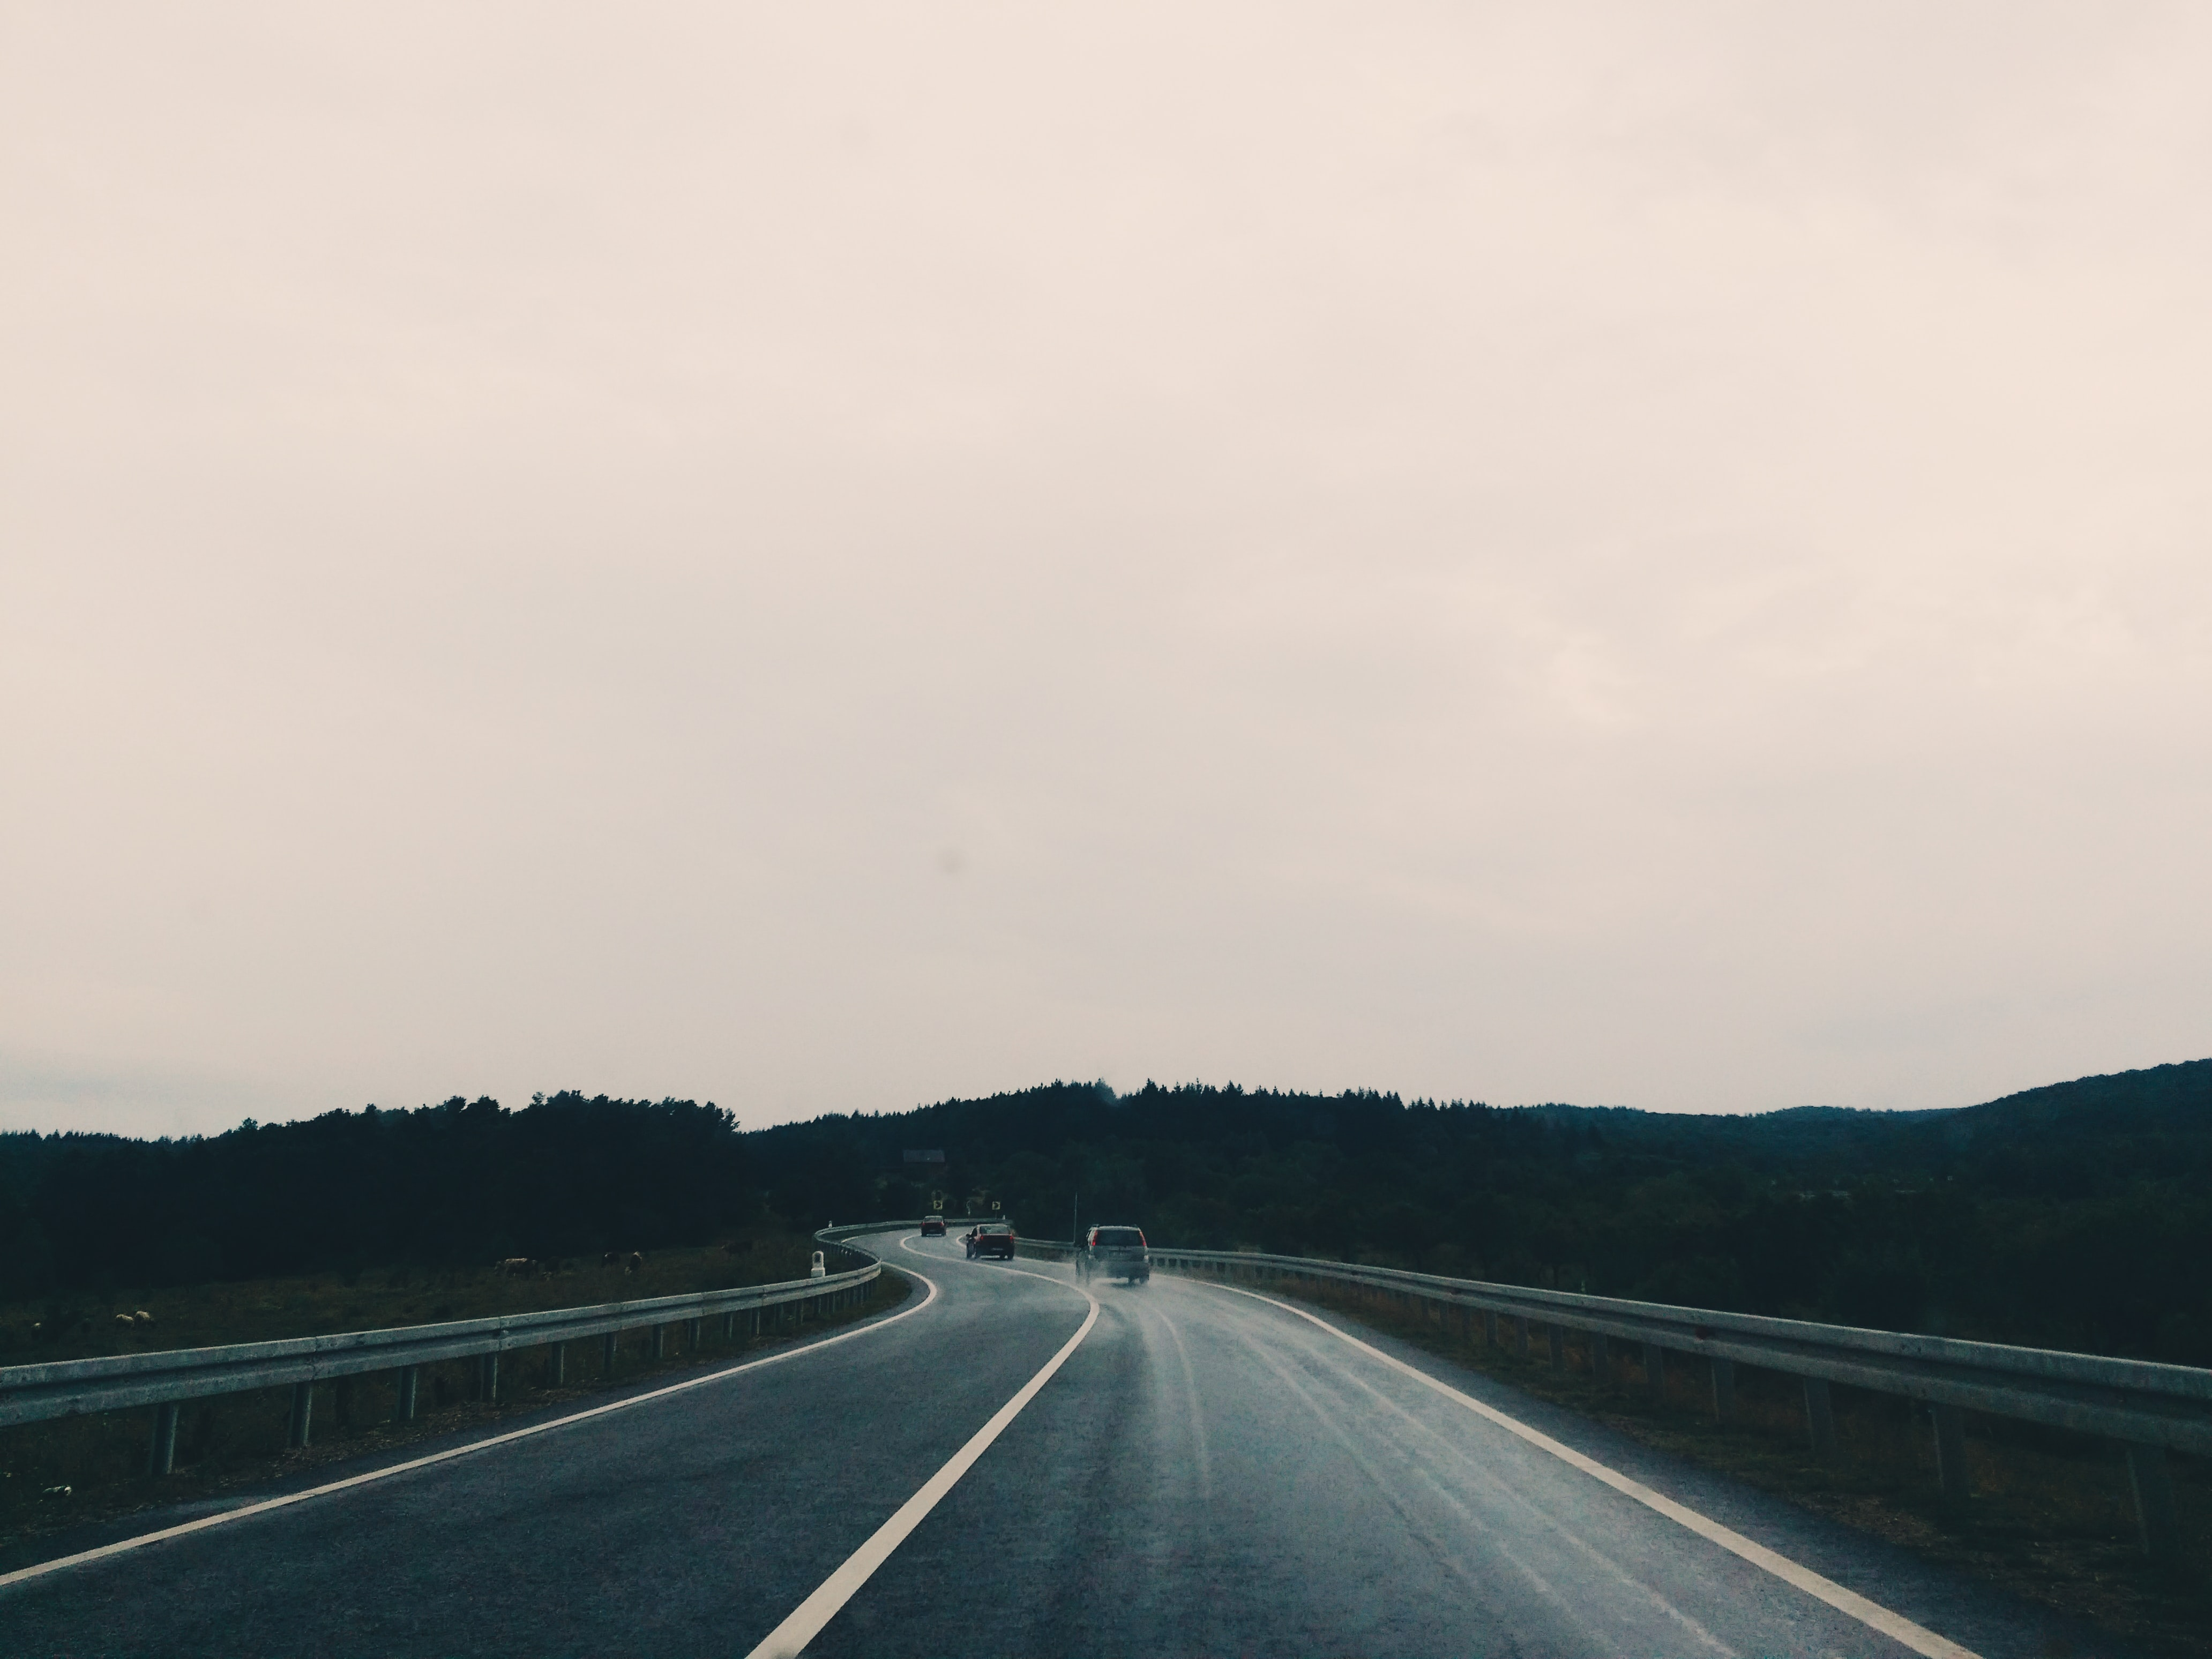 Cars in distance on the highway.